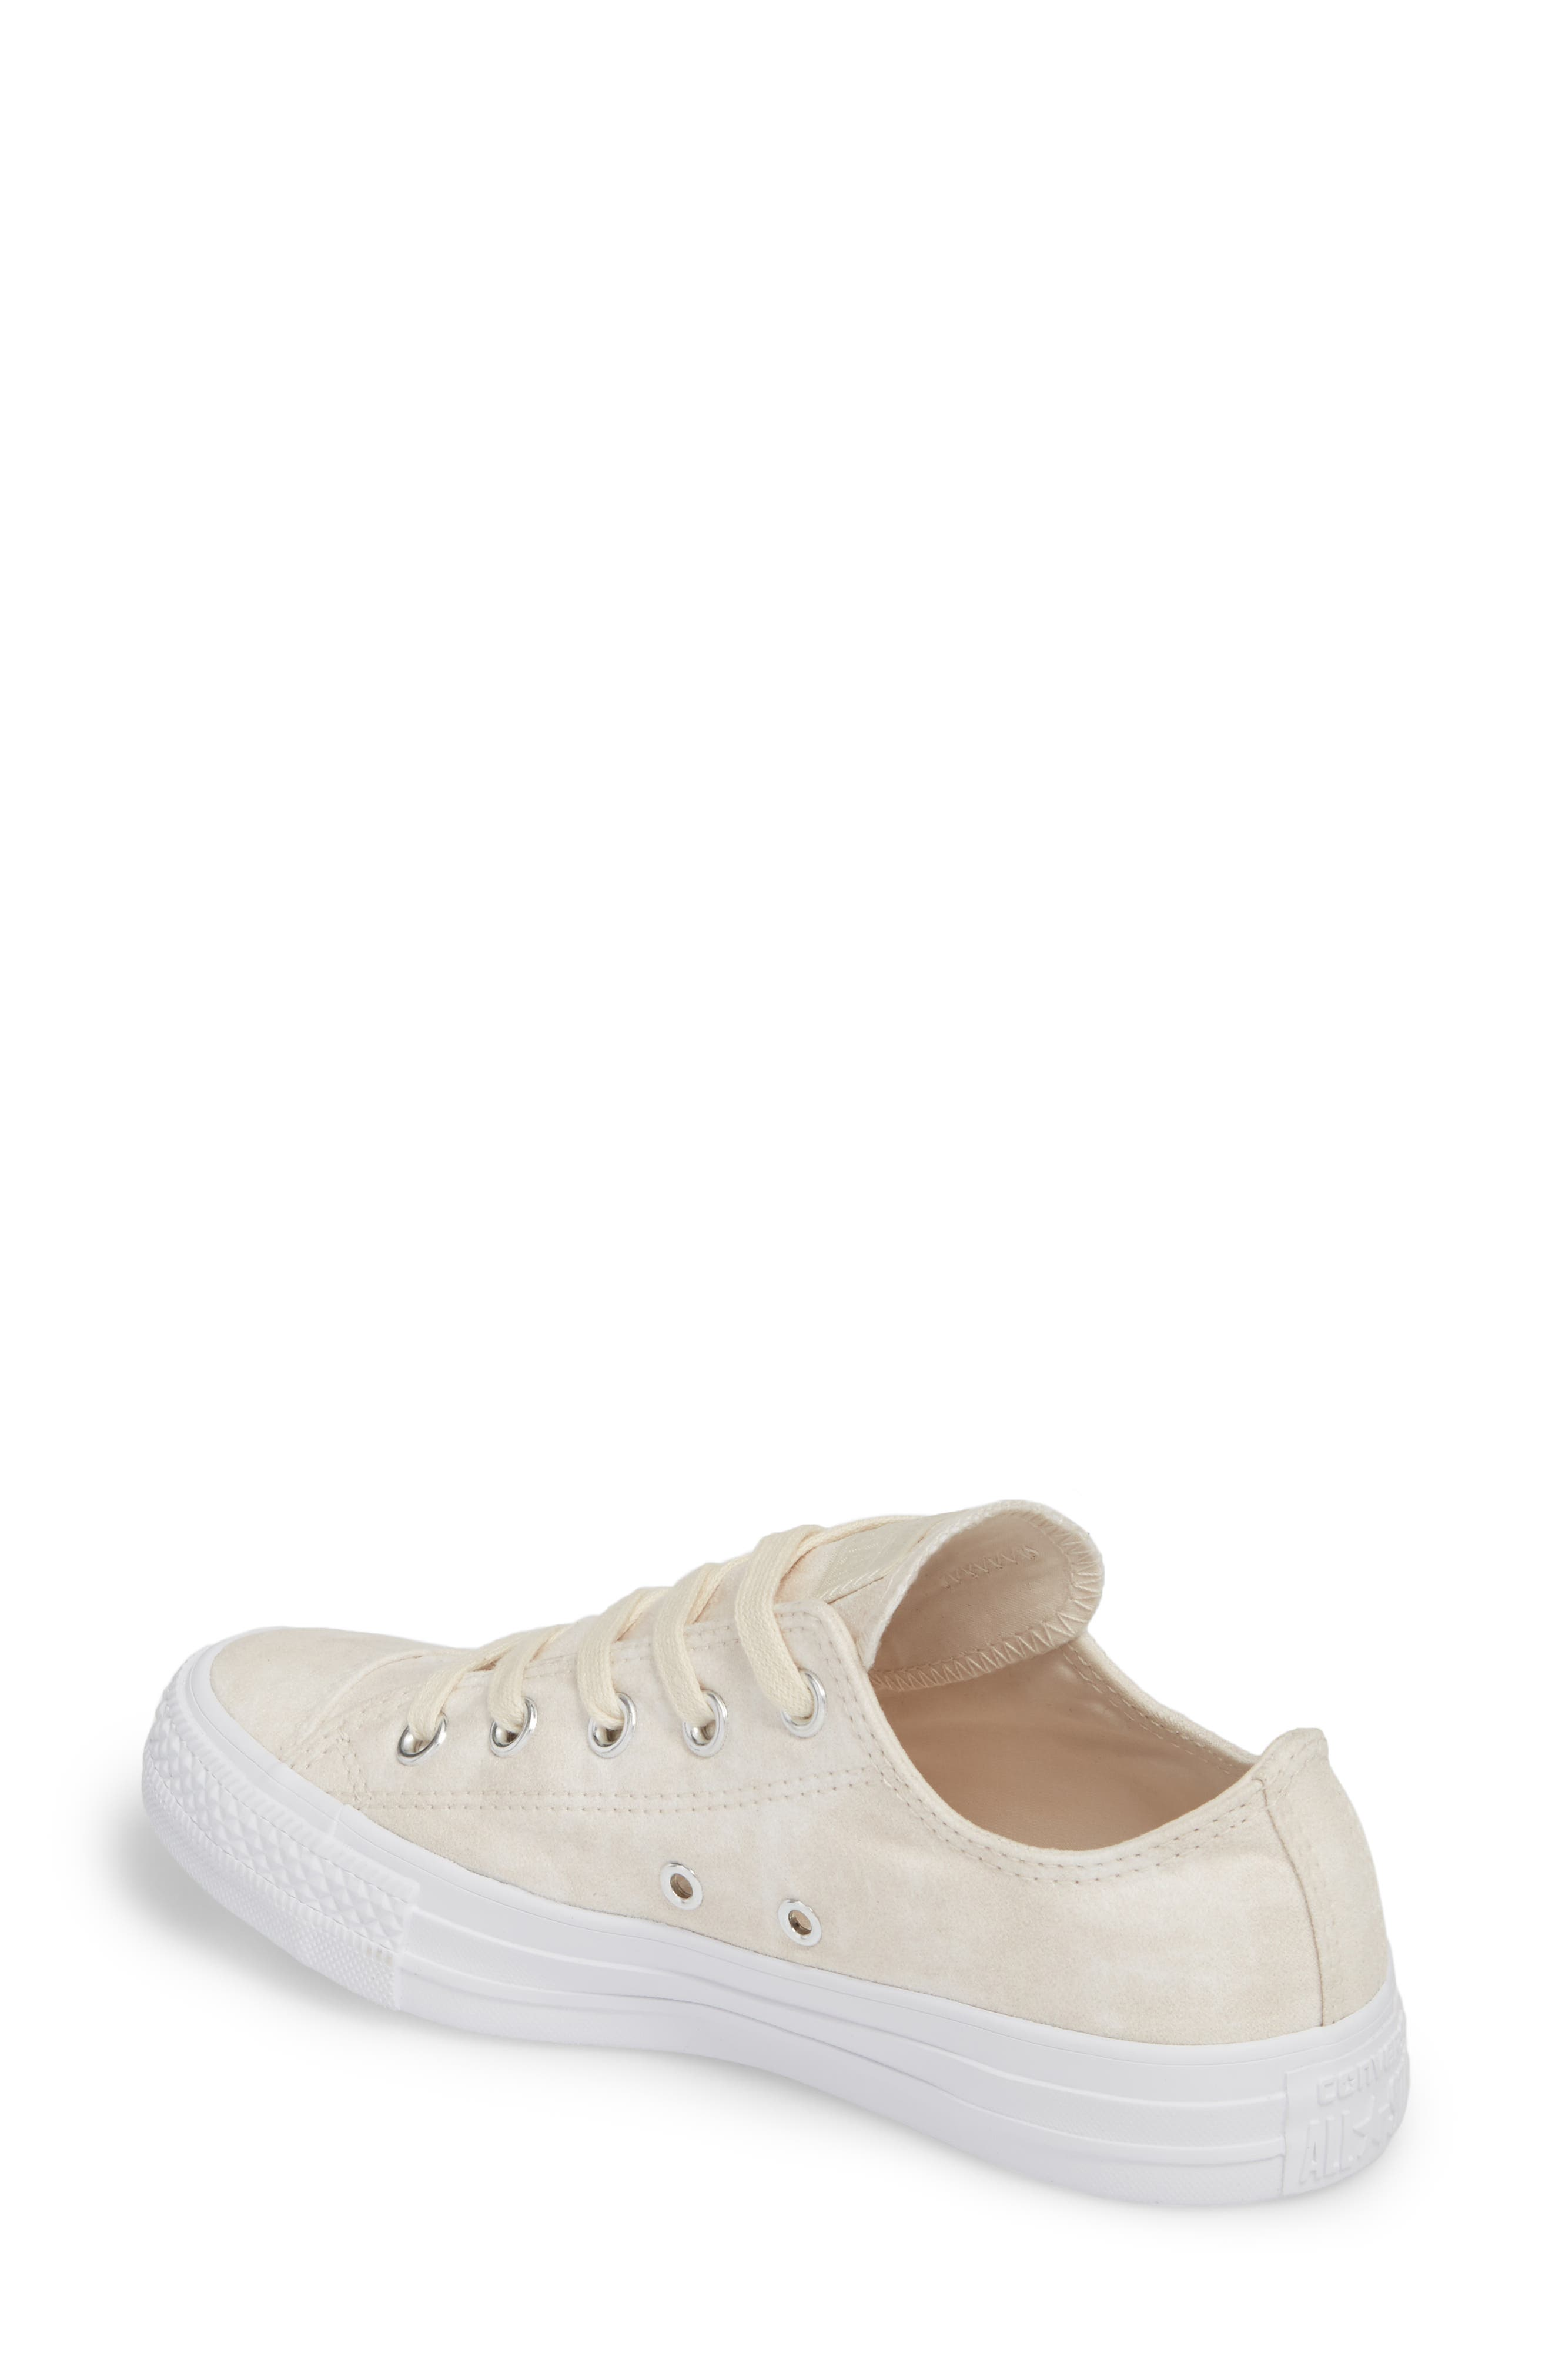 Chuck Taylor<sup>®</sup> All Star<sup>®</sup> Peached Low Top Sneaker,                             Alternate thumbnail 2, color,                             248